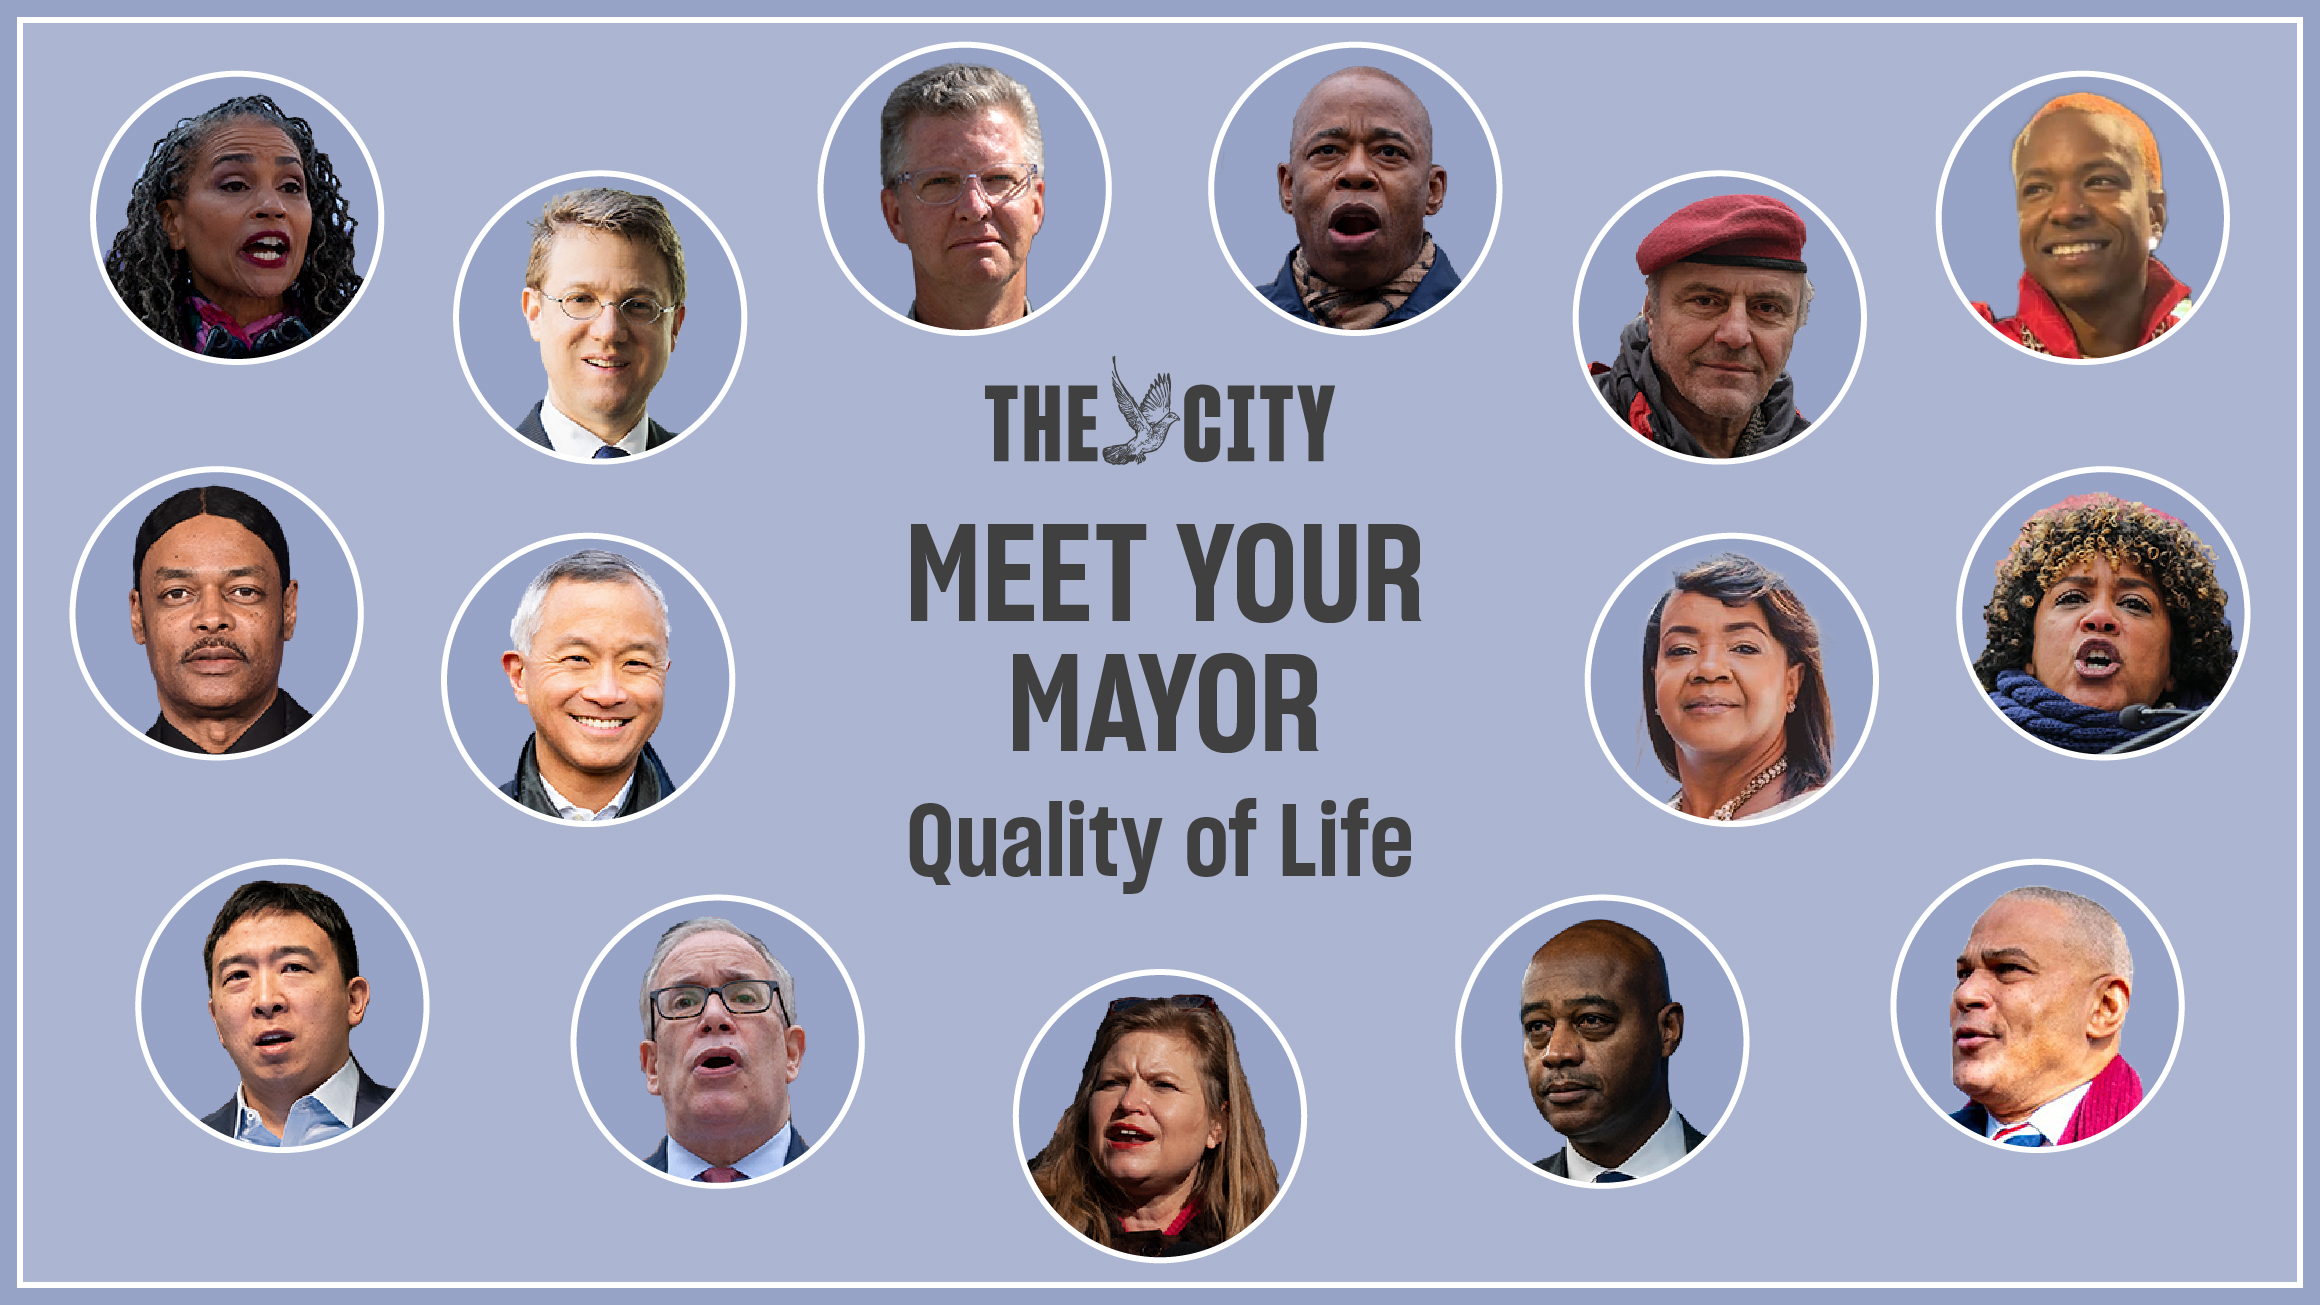 Headshots of the candidates featured in Meet Your Mayor.